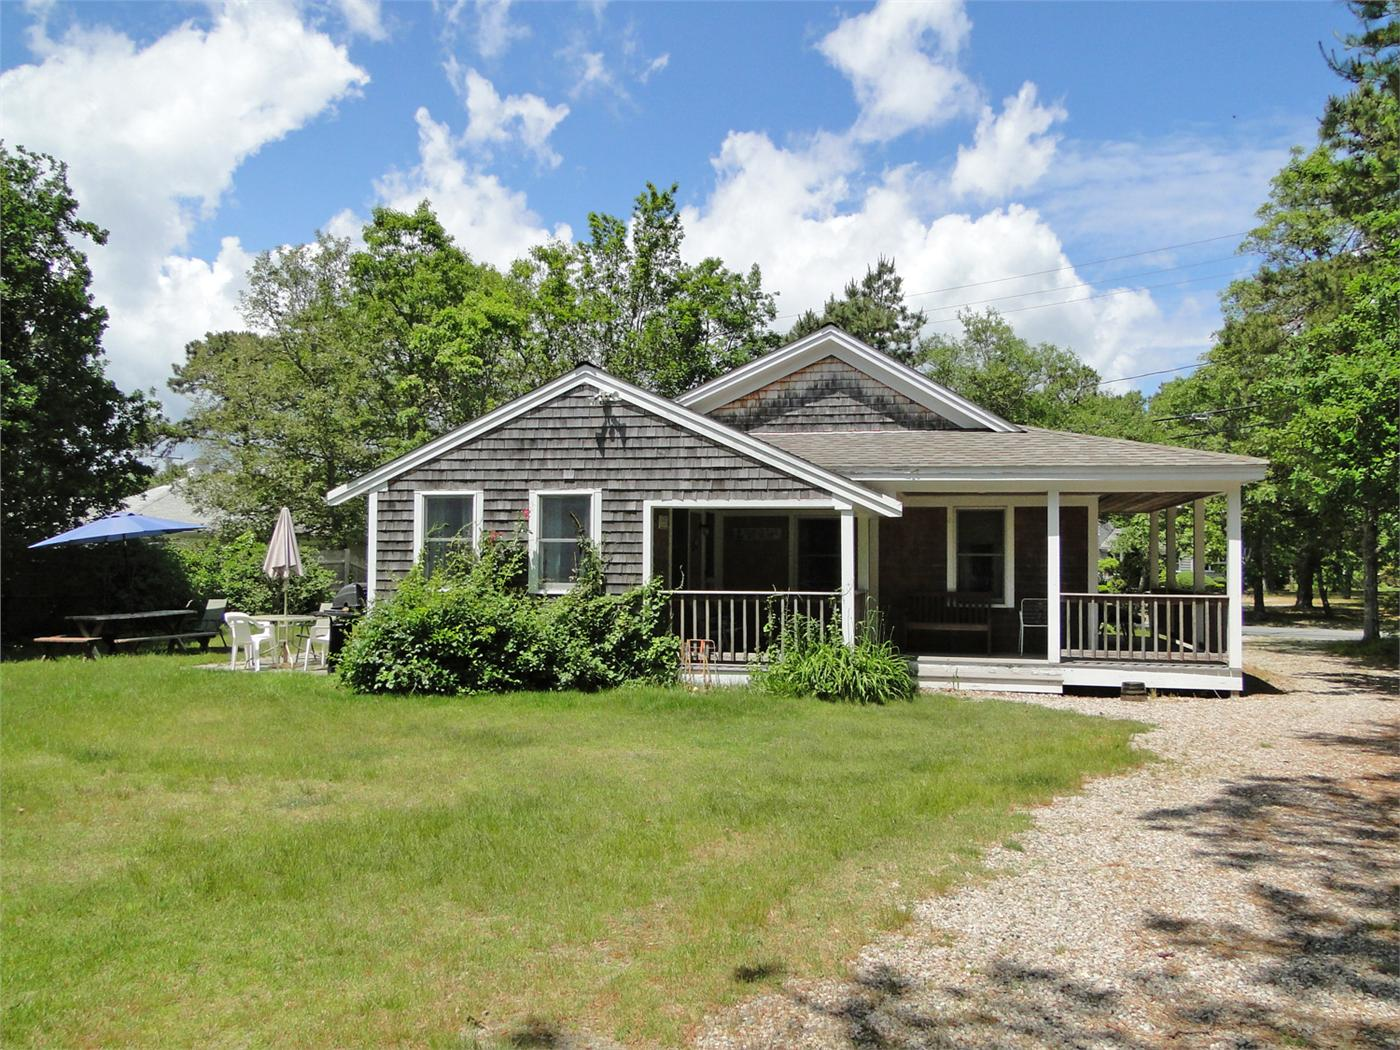 Yarmouth Vacation Rental Home In Cape Cod Ma 02673 Id 5376